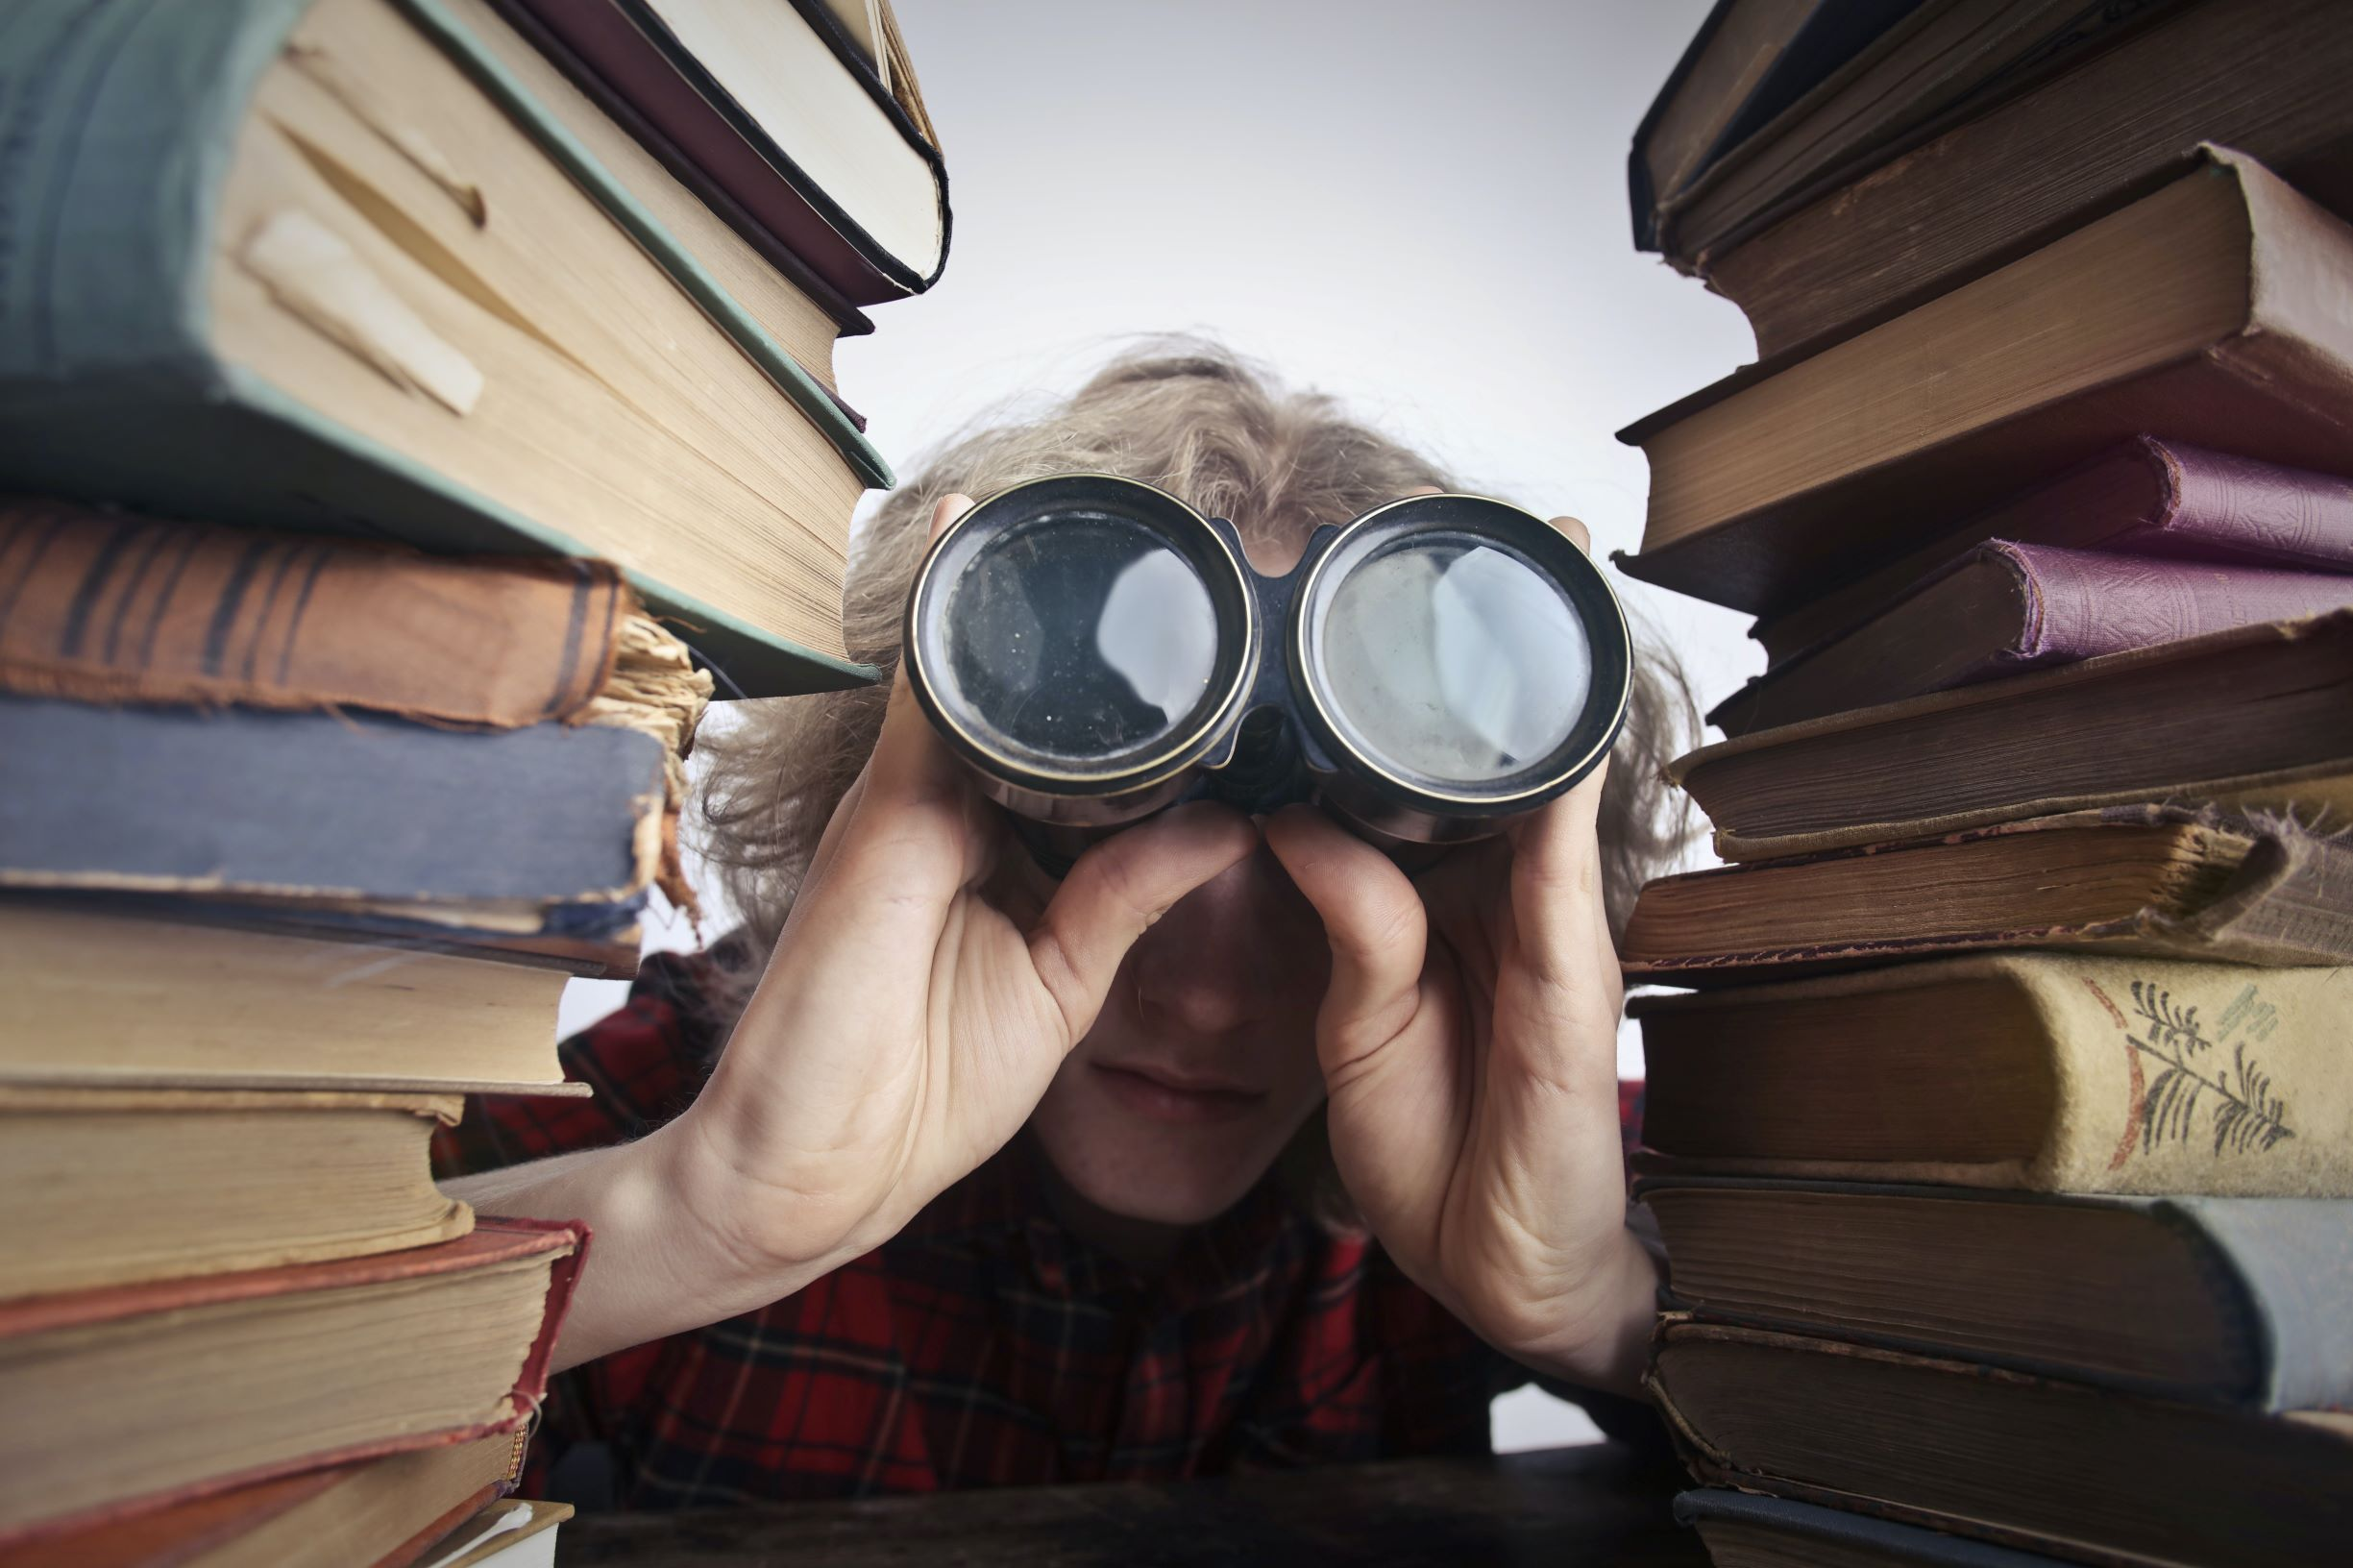 librarian looking for books with binoculars